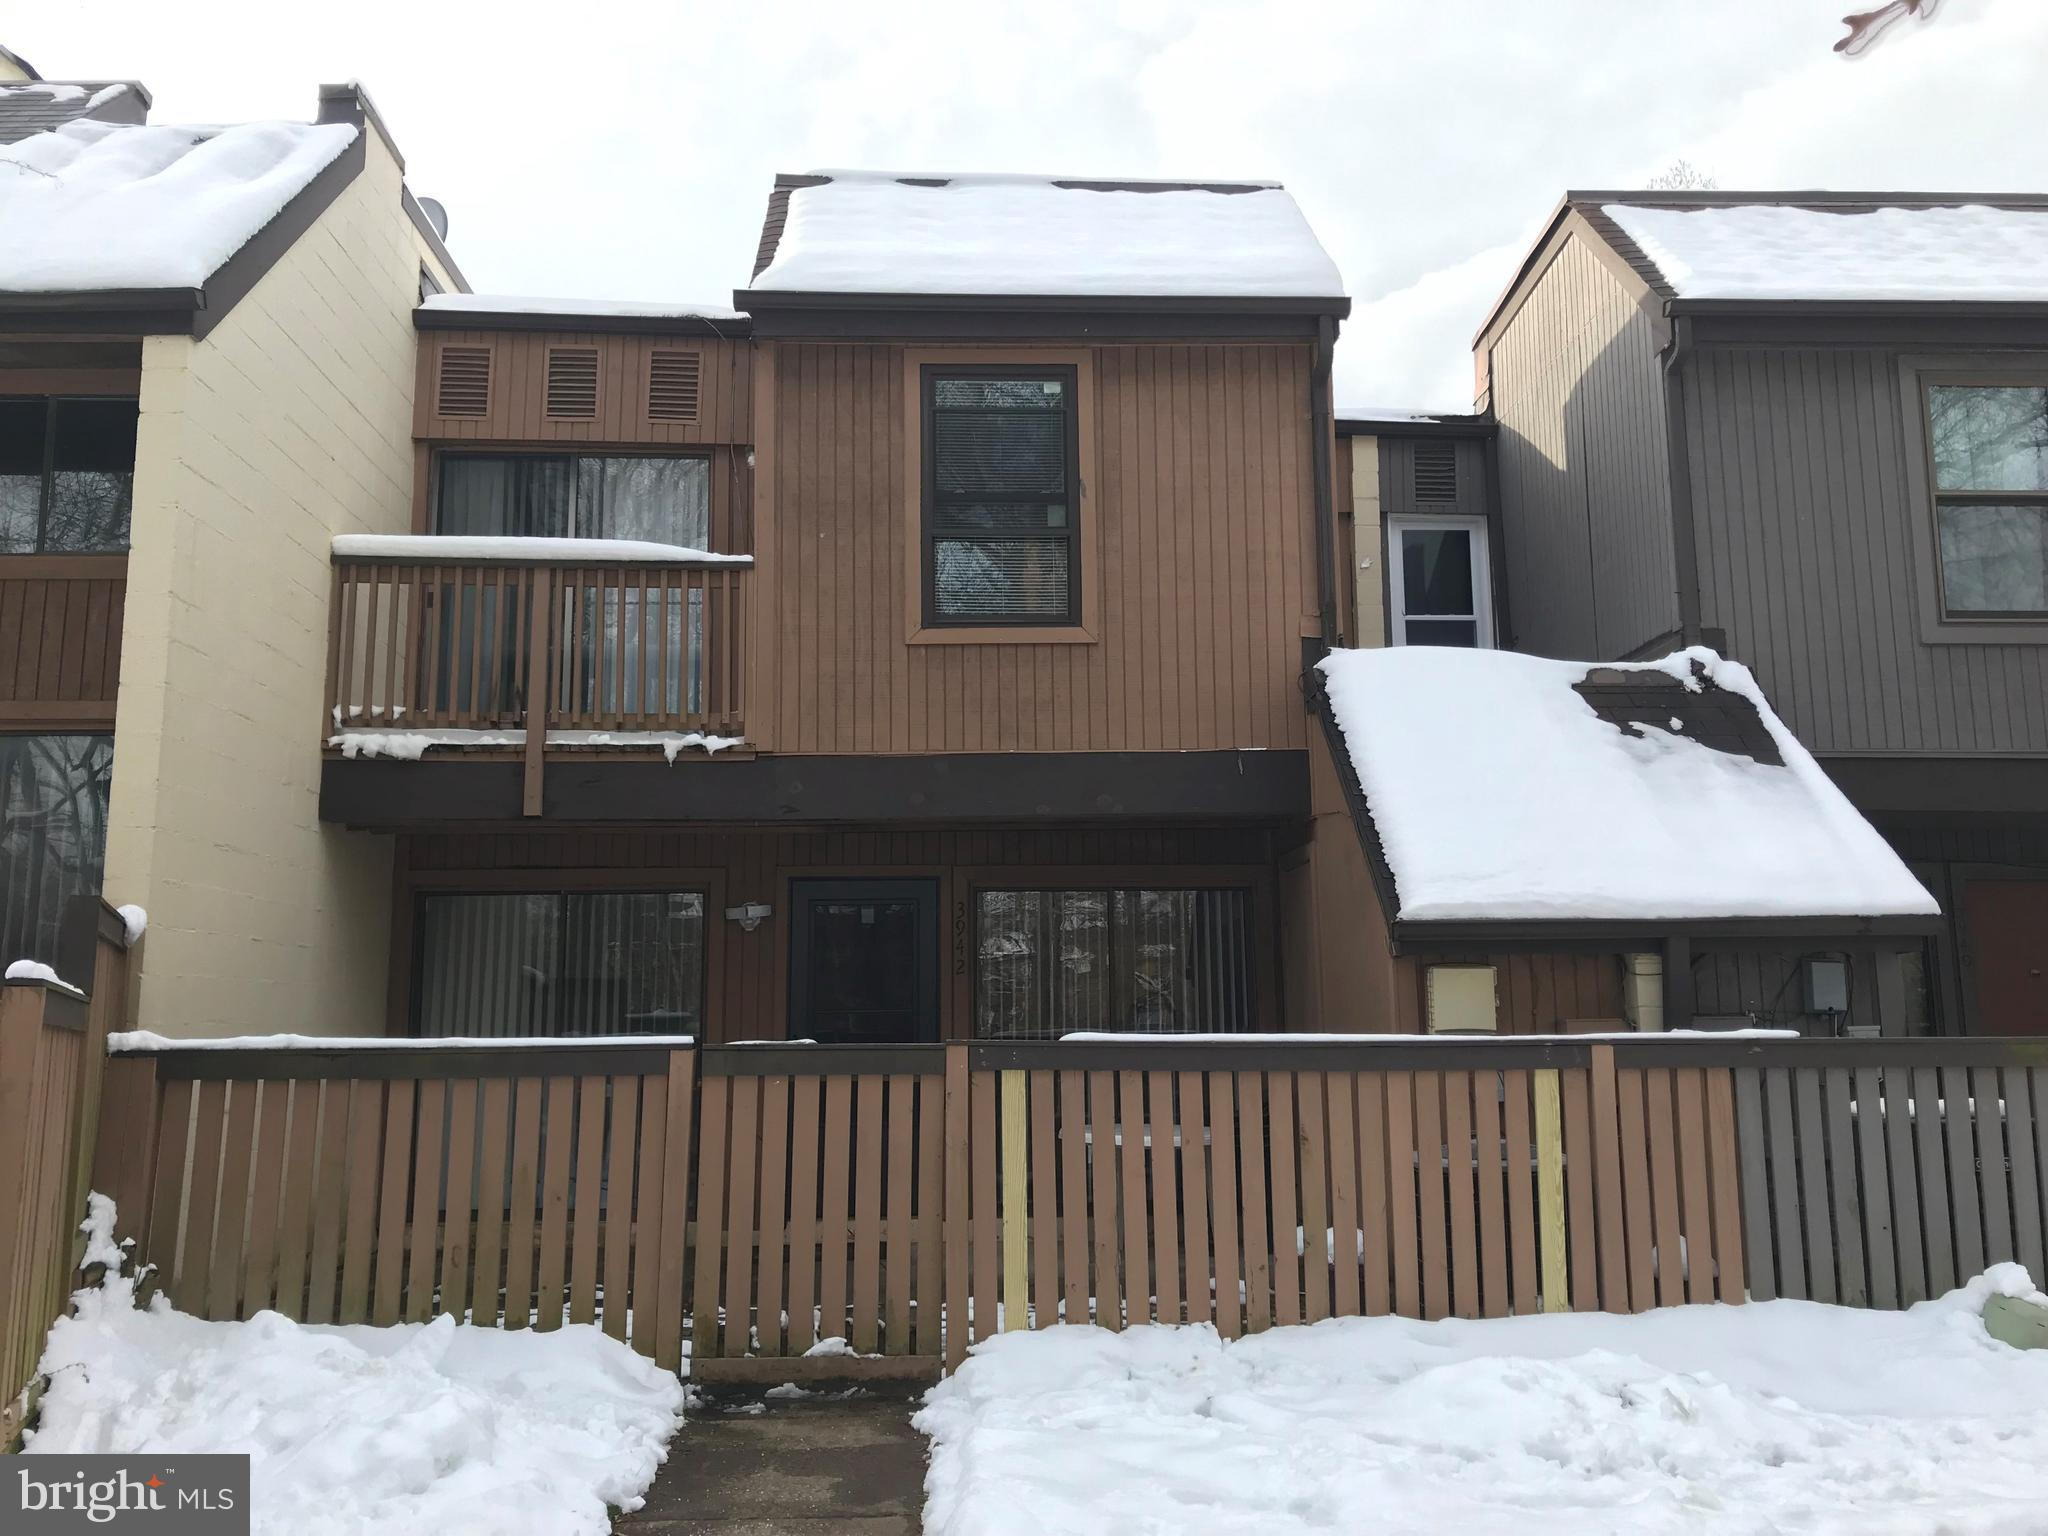 Renovated 2 level condo, great conditions, all modern stainless steel appliances, open floor plan.  2 sliding doors to private fenced-in  terrace facing woods.  Recess lighting, breaksfast bar, deck off master bedroom, washer and dryer in-unit.  Pets welcome, no restrictions.  This one is a must see!